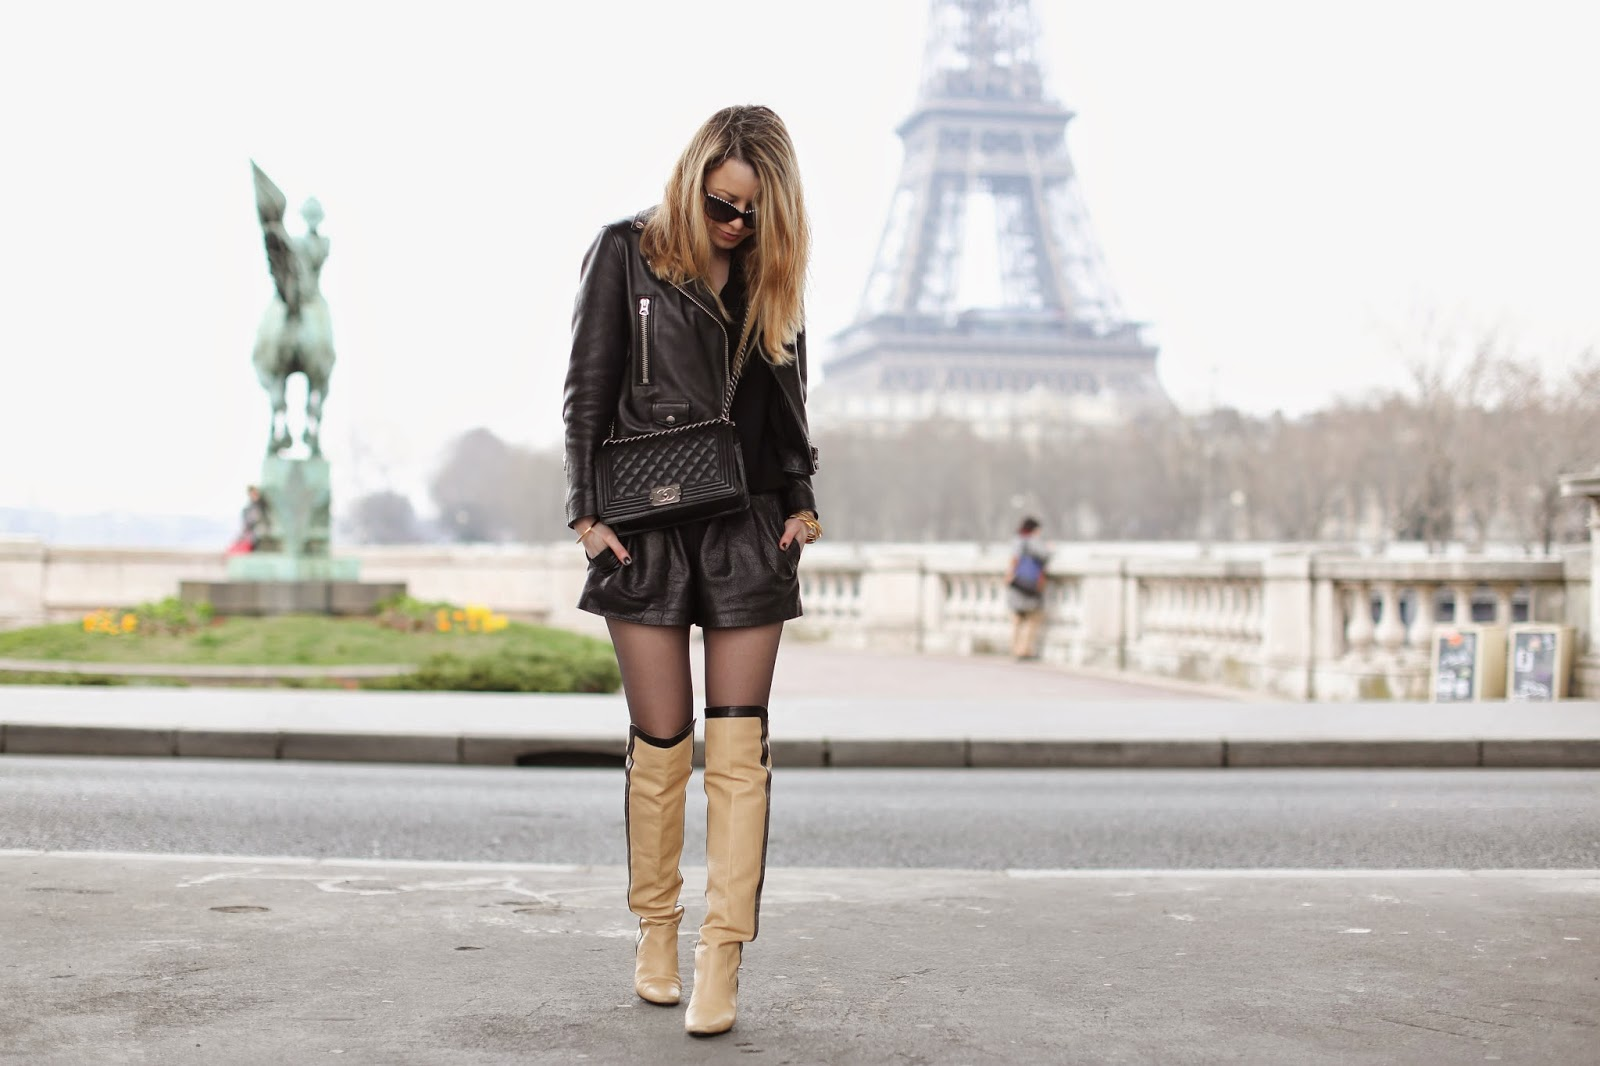 chanel, chanel boots, fashion, streetstyle, burberry, eiffel tower